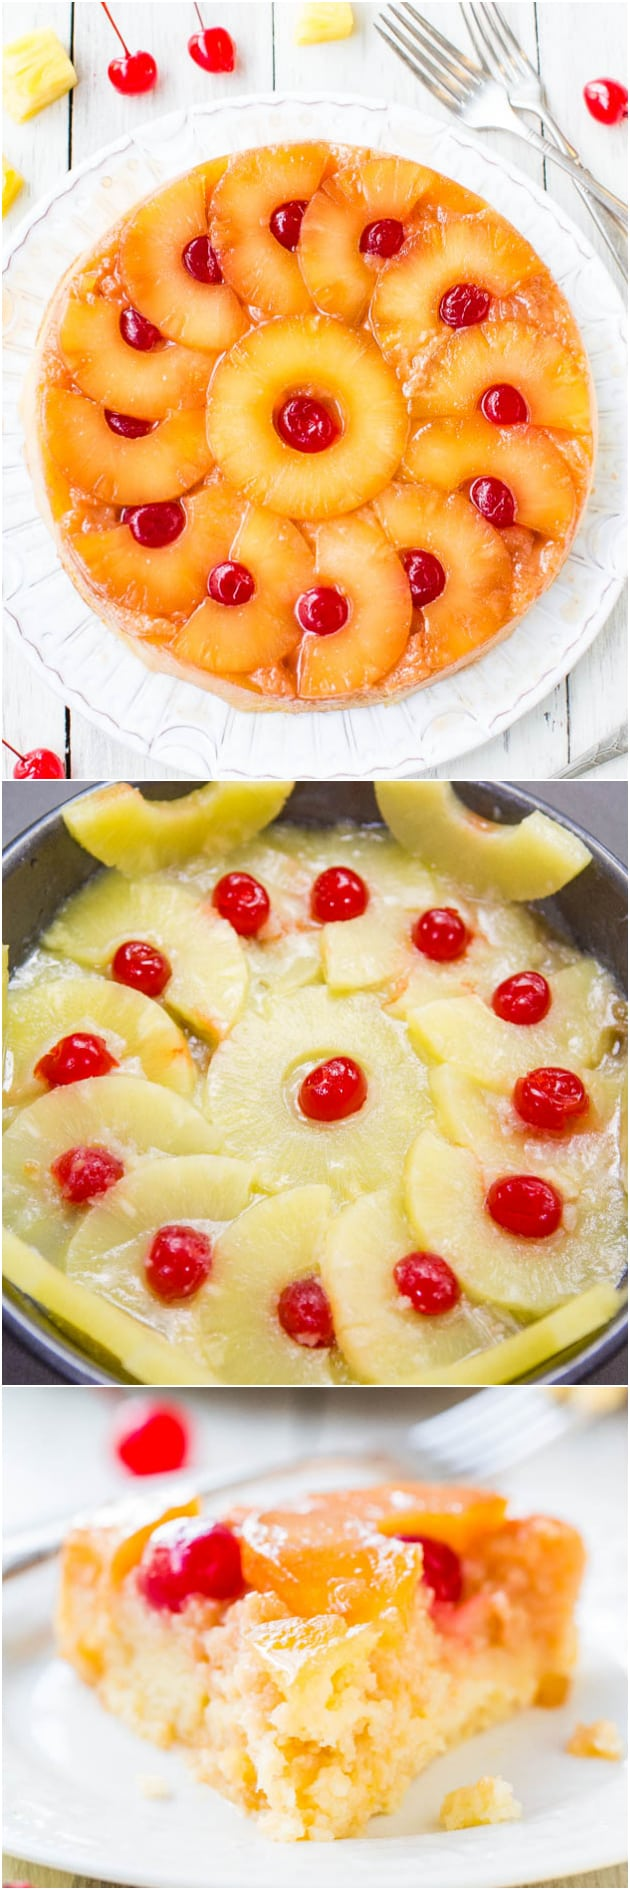 This pineapple upside down cake is so soft, moist, and really is the best!! A cheery, happy cake that's sure to put a smile on anyone's face! This 100% from-scratch cake is an EASY reader favorite you're going to love!! #upsidedowncake #cakerecipe #pineapple #pineapplerecipe